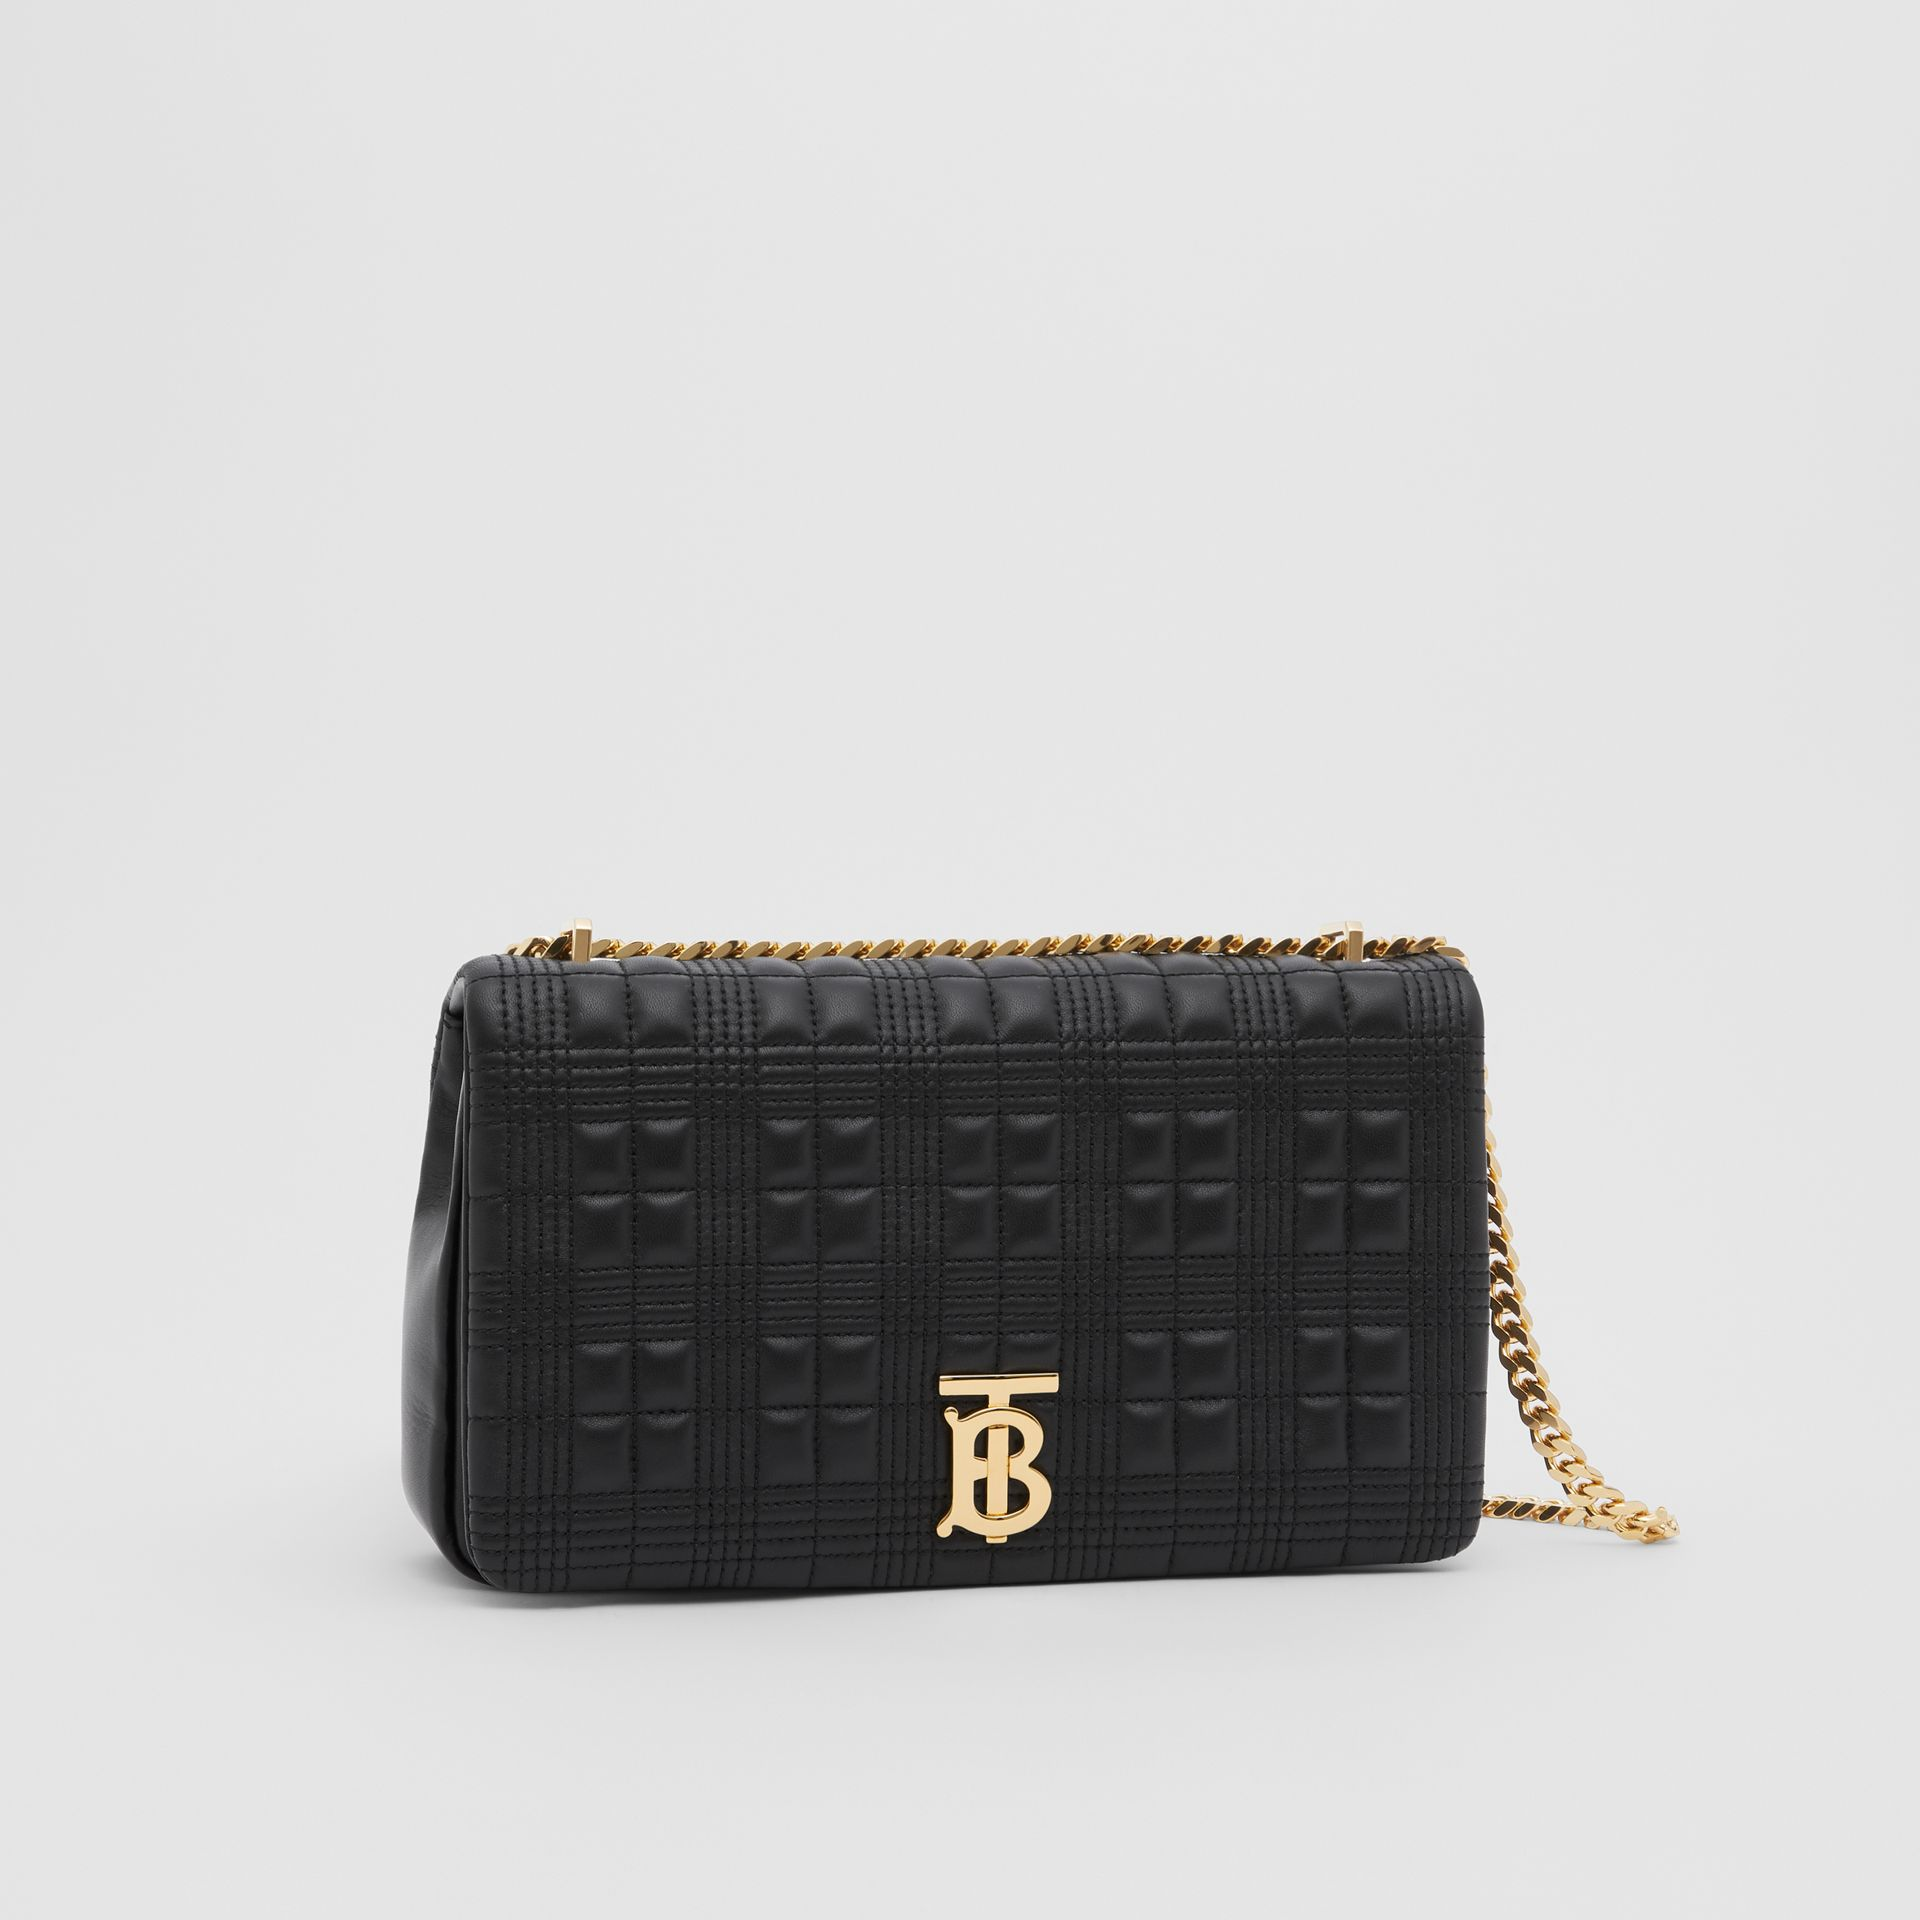 Medium Quilted Lambskin Lola Bag in Black - Women | Burberry Australia - gallery image 4